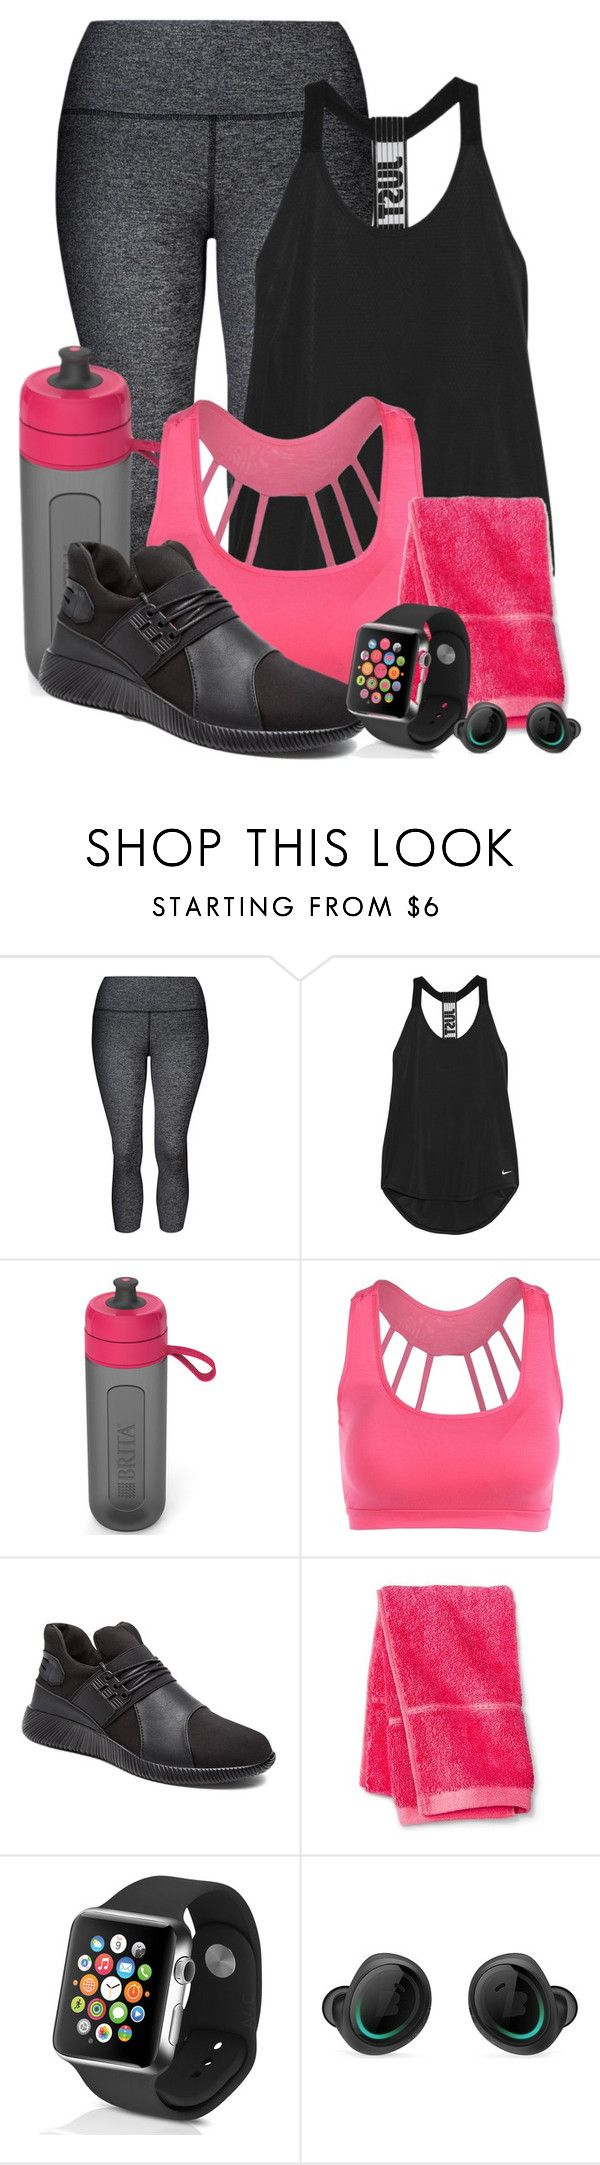 """""""New Years Resolutions"""" by darksyngr ❤ liked on Polyvore featuring Lorna Jane, NIKE, Brita, Threshold and Apple"""